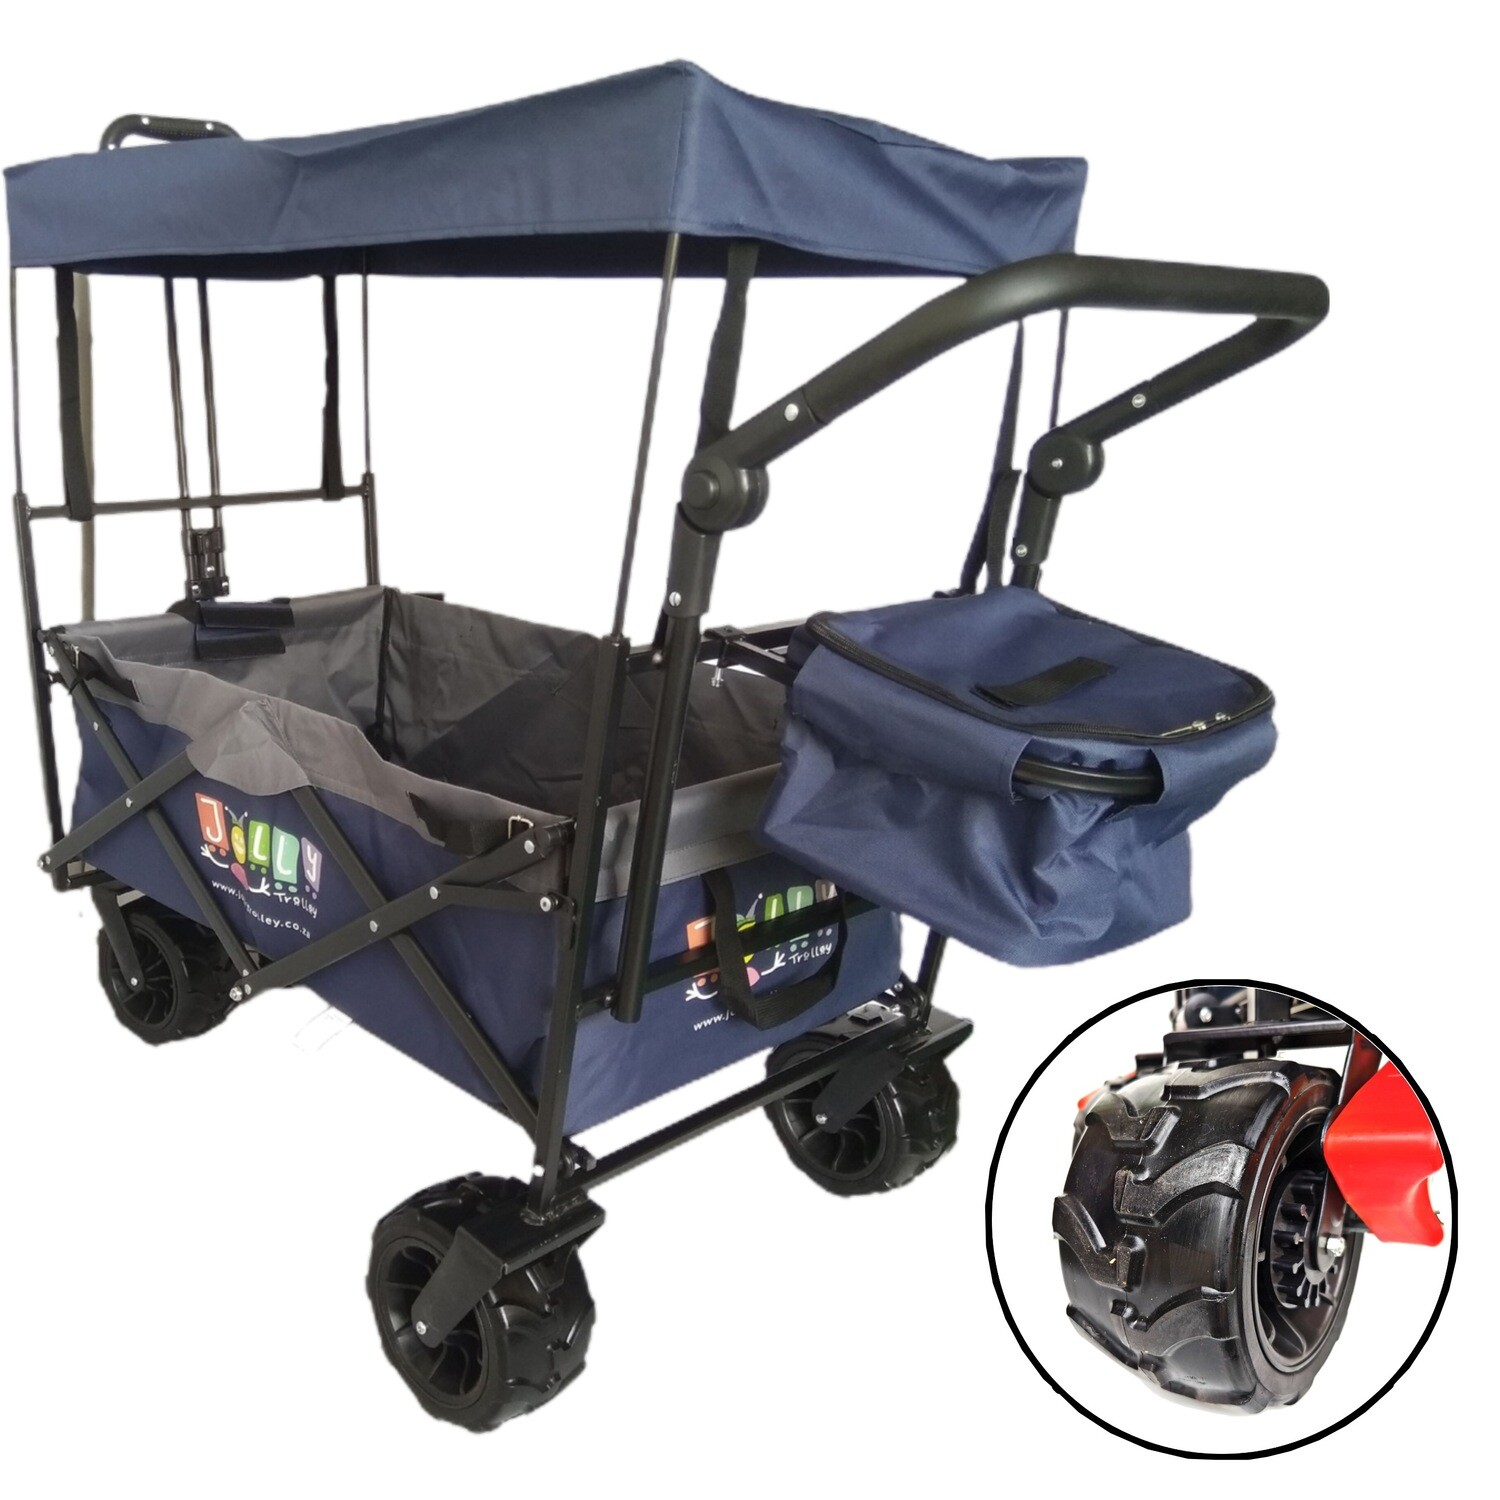 4X4 FAMILY PRE ORDER NOW  Jolly Trolley with Canopy and Cooler bag